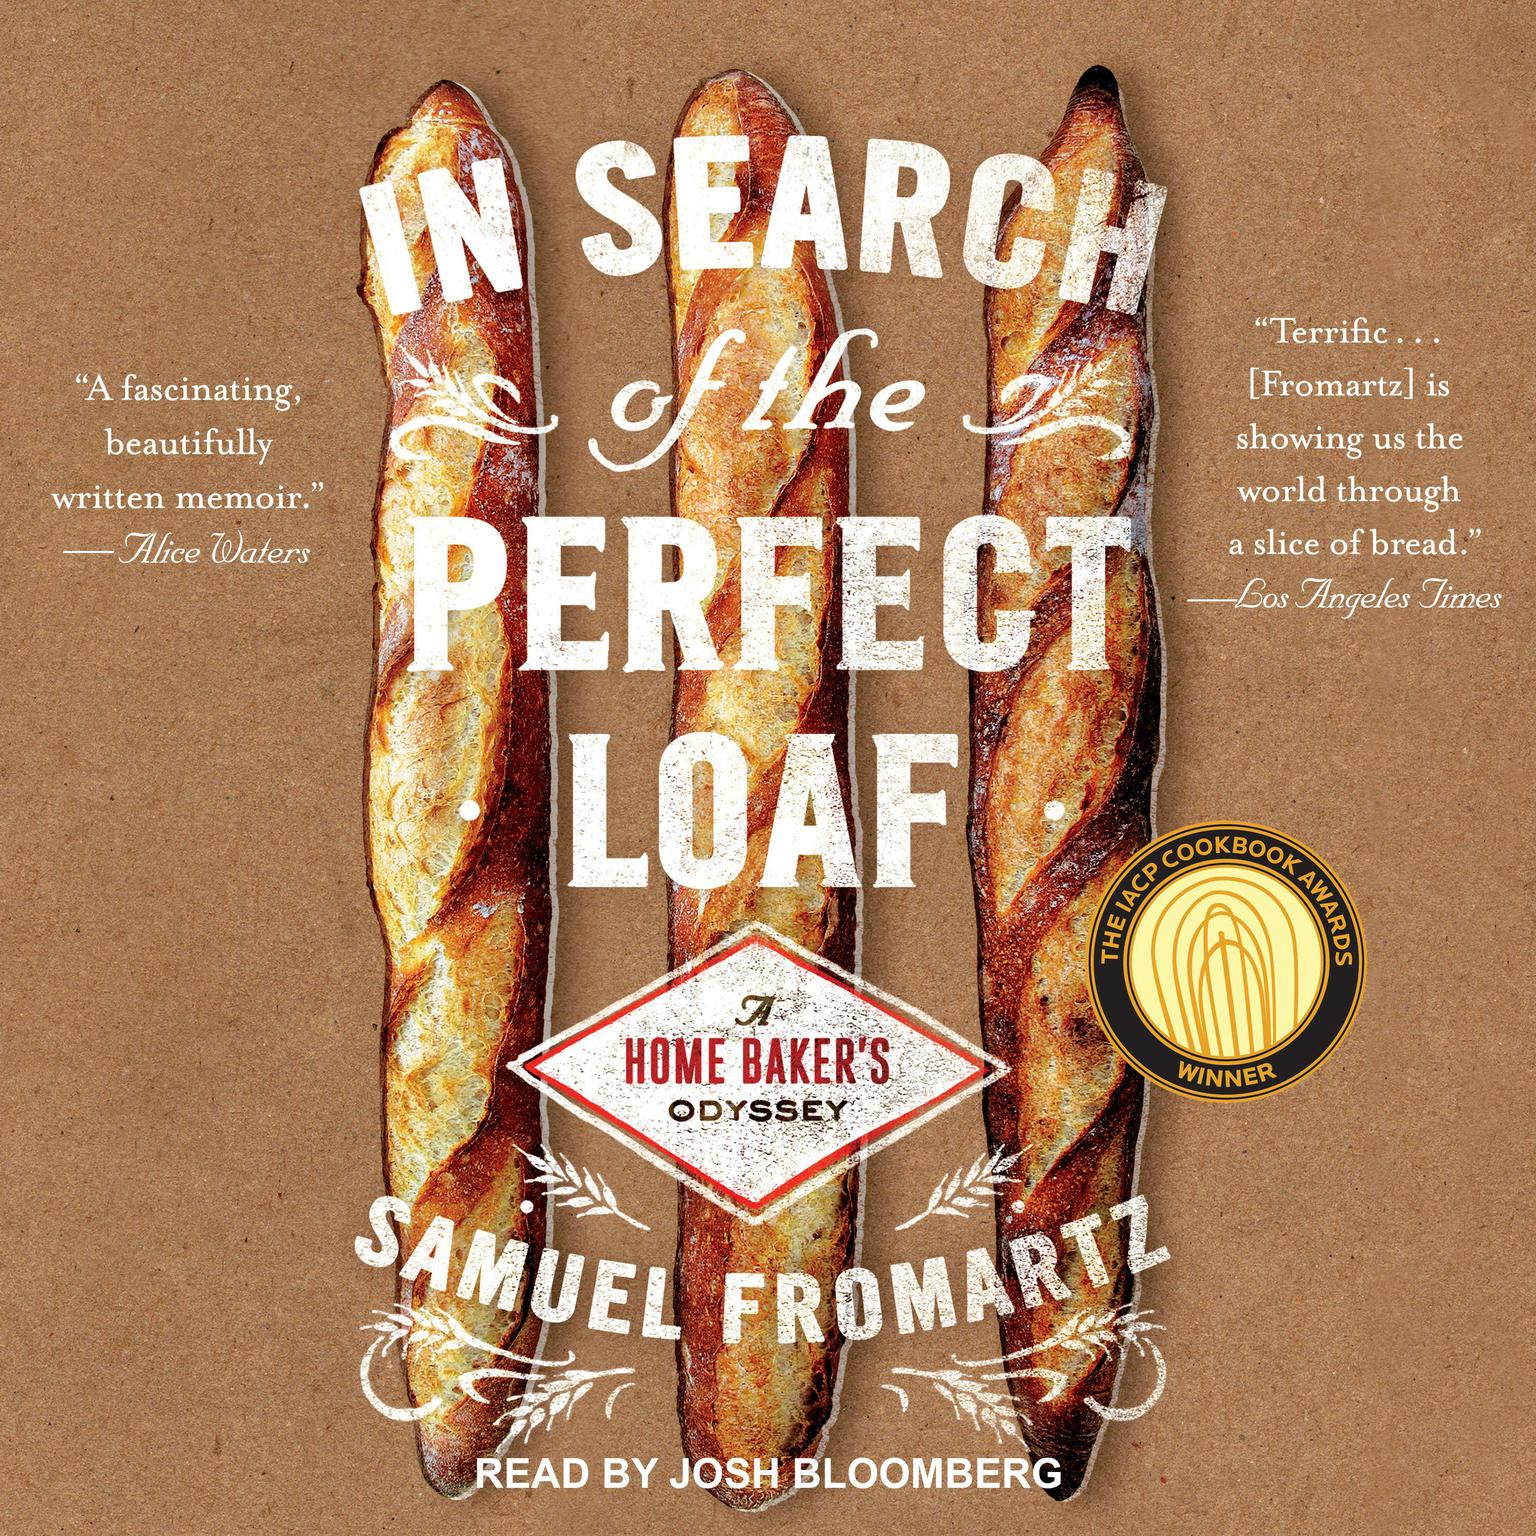 In Search of the Perfect Loaf: A Home Baker's Odyssey Audiobook, by Samuel Fromartz